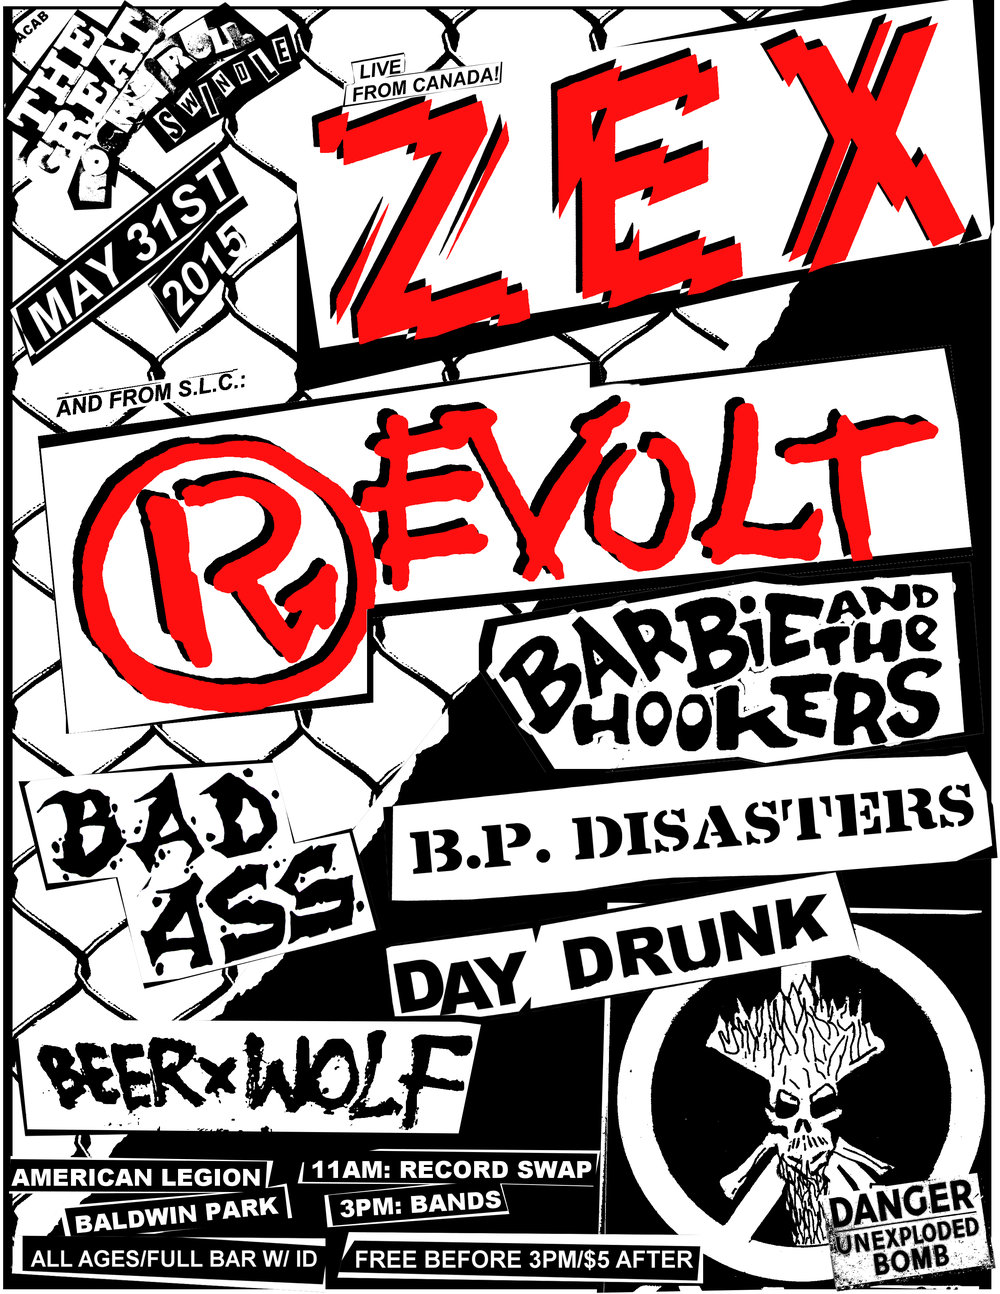 flyer-15.05.31-baldwinpark-zex-red.jpg